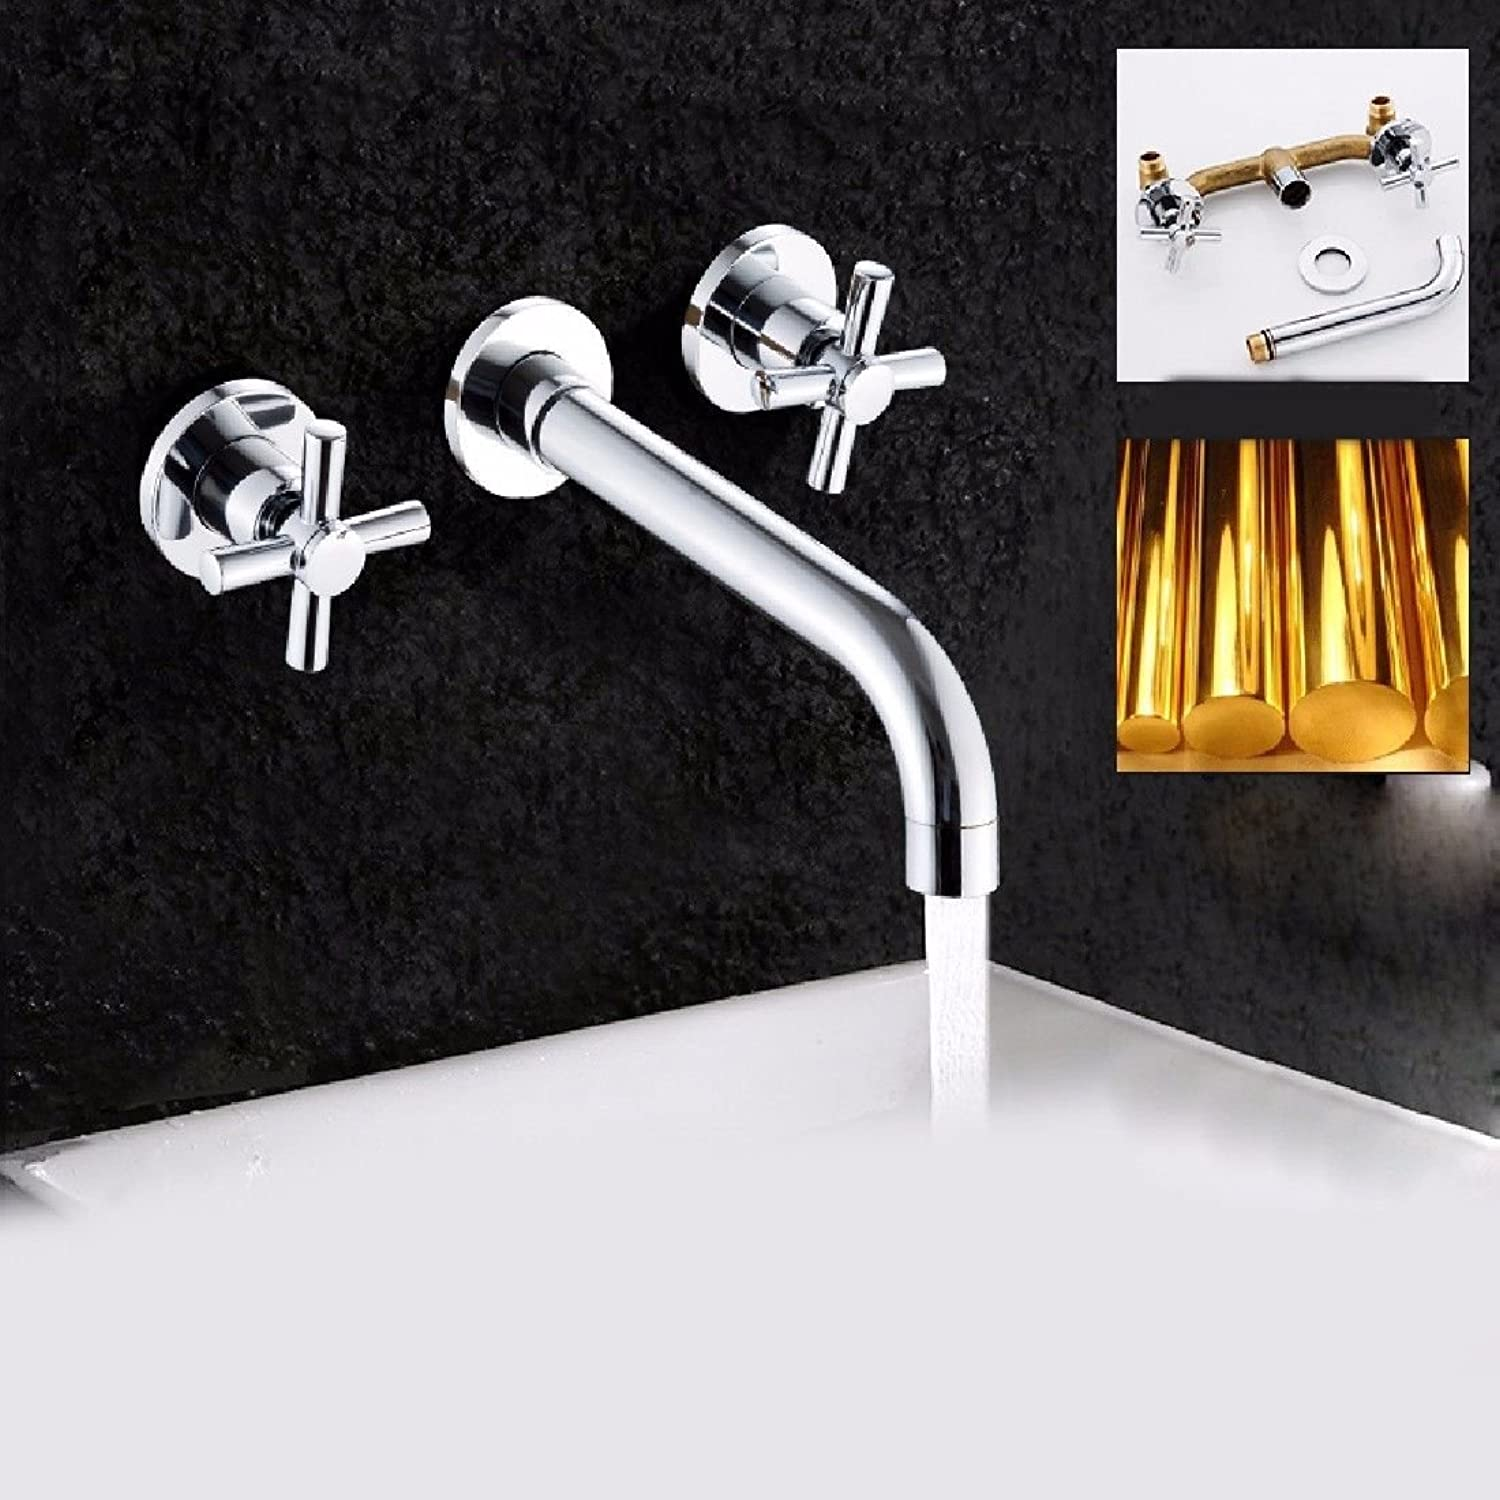 Lalaky Taps Faucet Kitchen Mixer Sink Waterfall Bathroom Mixer Basin Mixer Tap for Kitchen Bathroom and Washroom Full Copper Dark Wall Mounted Hot and Cold Embedded Double Handle